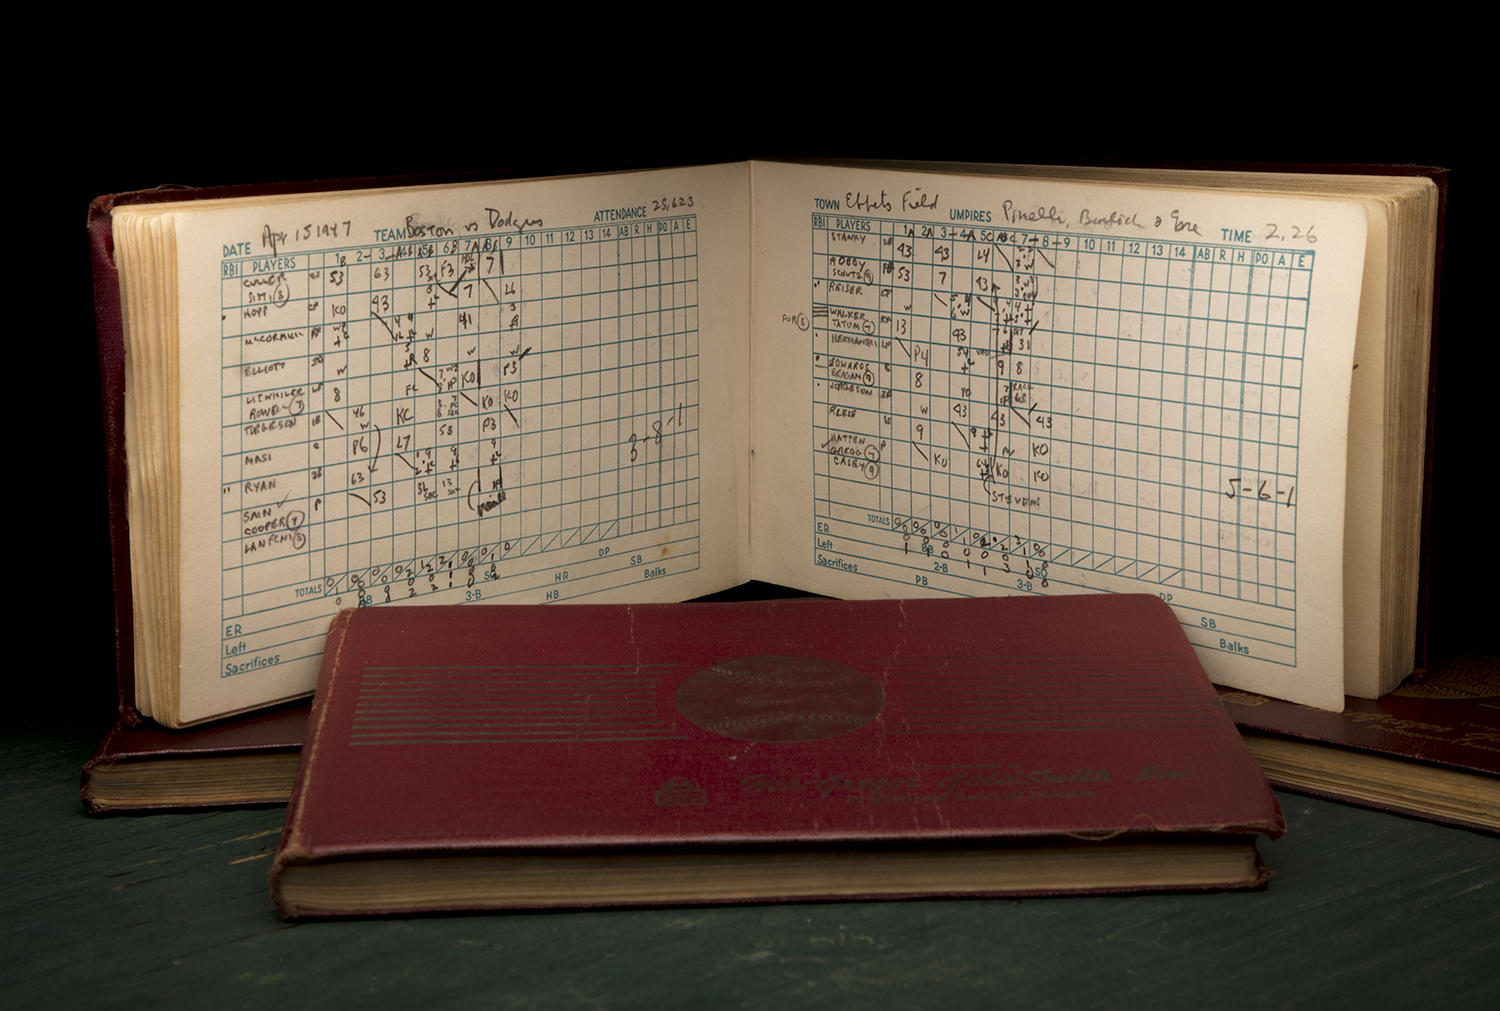 "Tom Meany, a journalist for the <em>New York World-Telegram</em>, was in attendance at Ebbets Field the day Jackie Robinson made his major league debut. He documented the game in his scorebook, now preserved in the Hall of Fame's collection. <a href=""http://collection.baseballhall.org/islandora/object/islandora%3A506604"">PASTIME</a> (Milo Stewart Jr. / National Baseball Hall of Fame and Museum)"